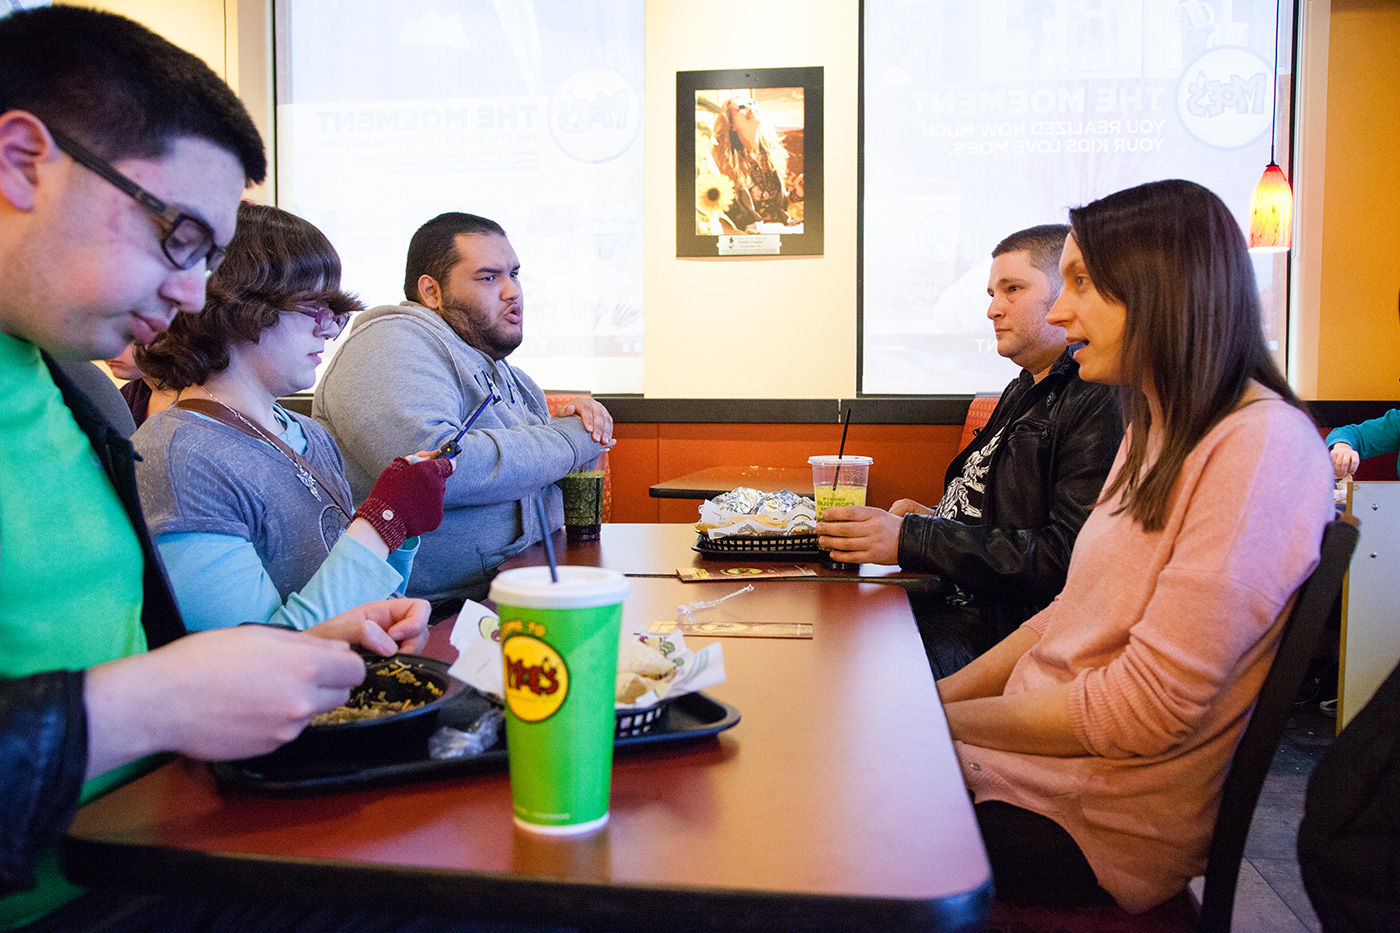 Assoc. Prof. Ashleigh Hillier runs a monthly social event for high-functioning young people with Autism Spectrum Disorder.